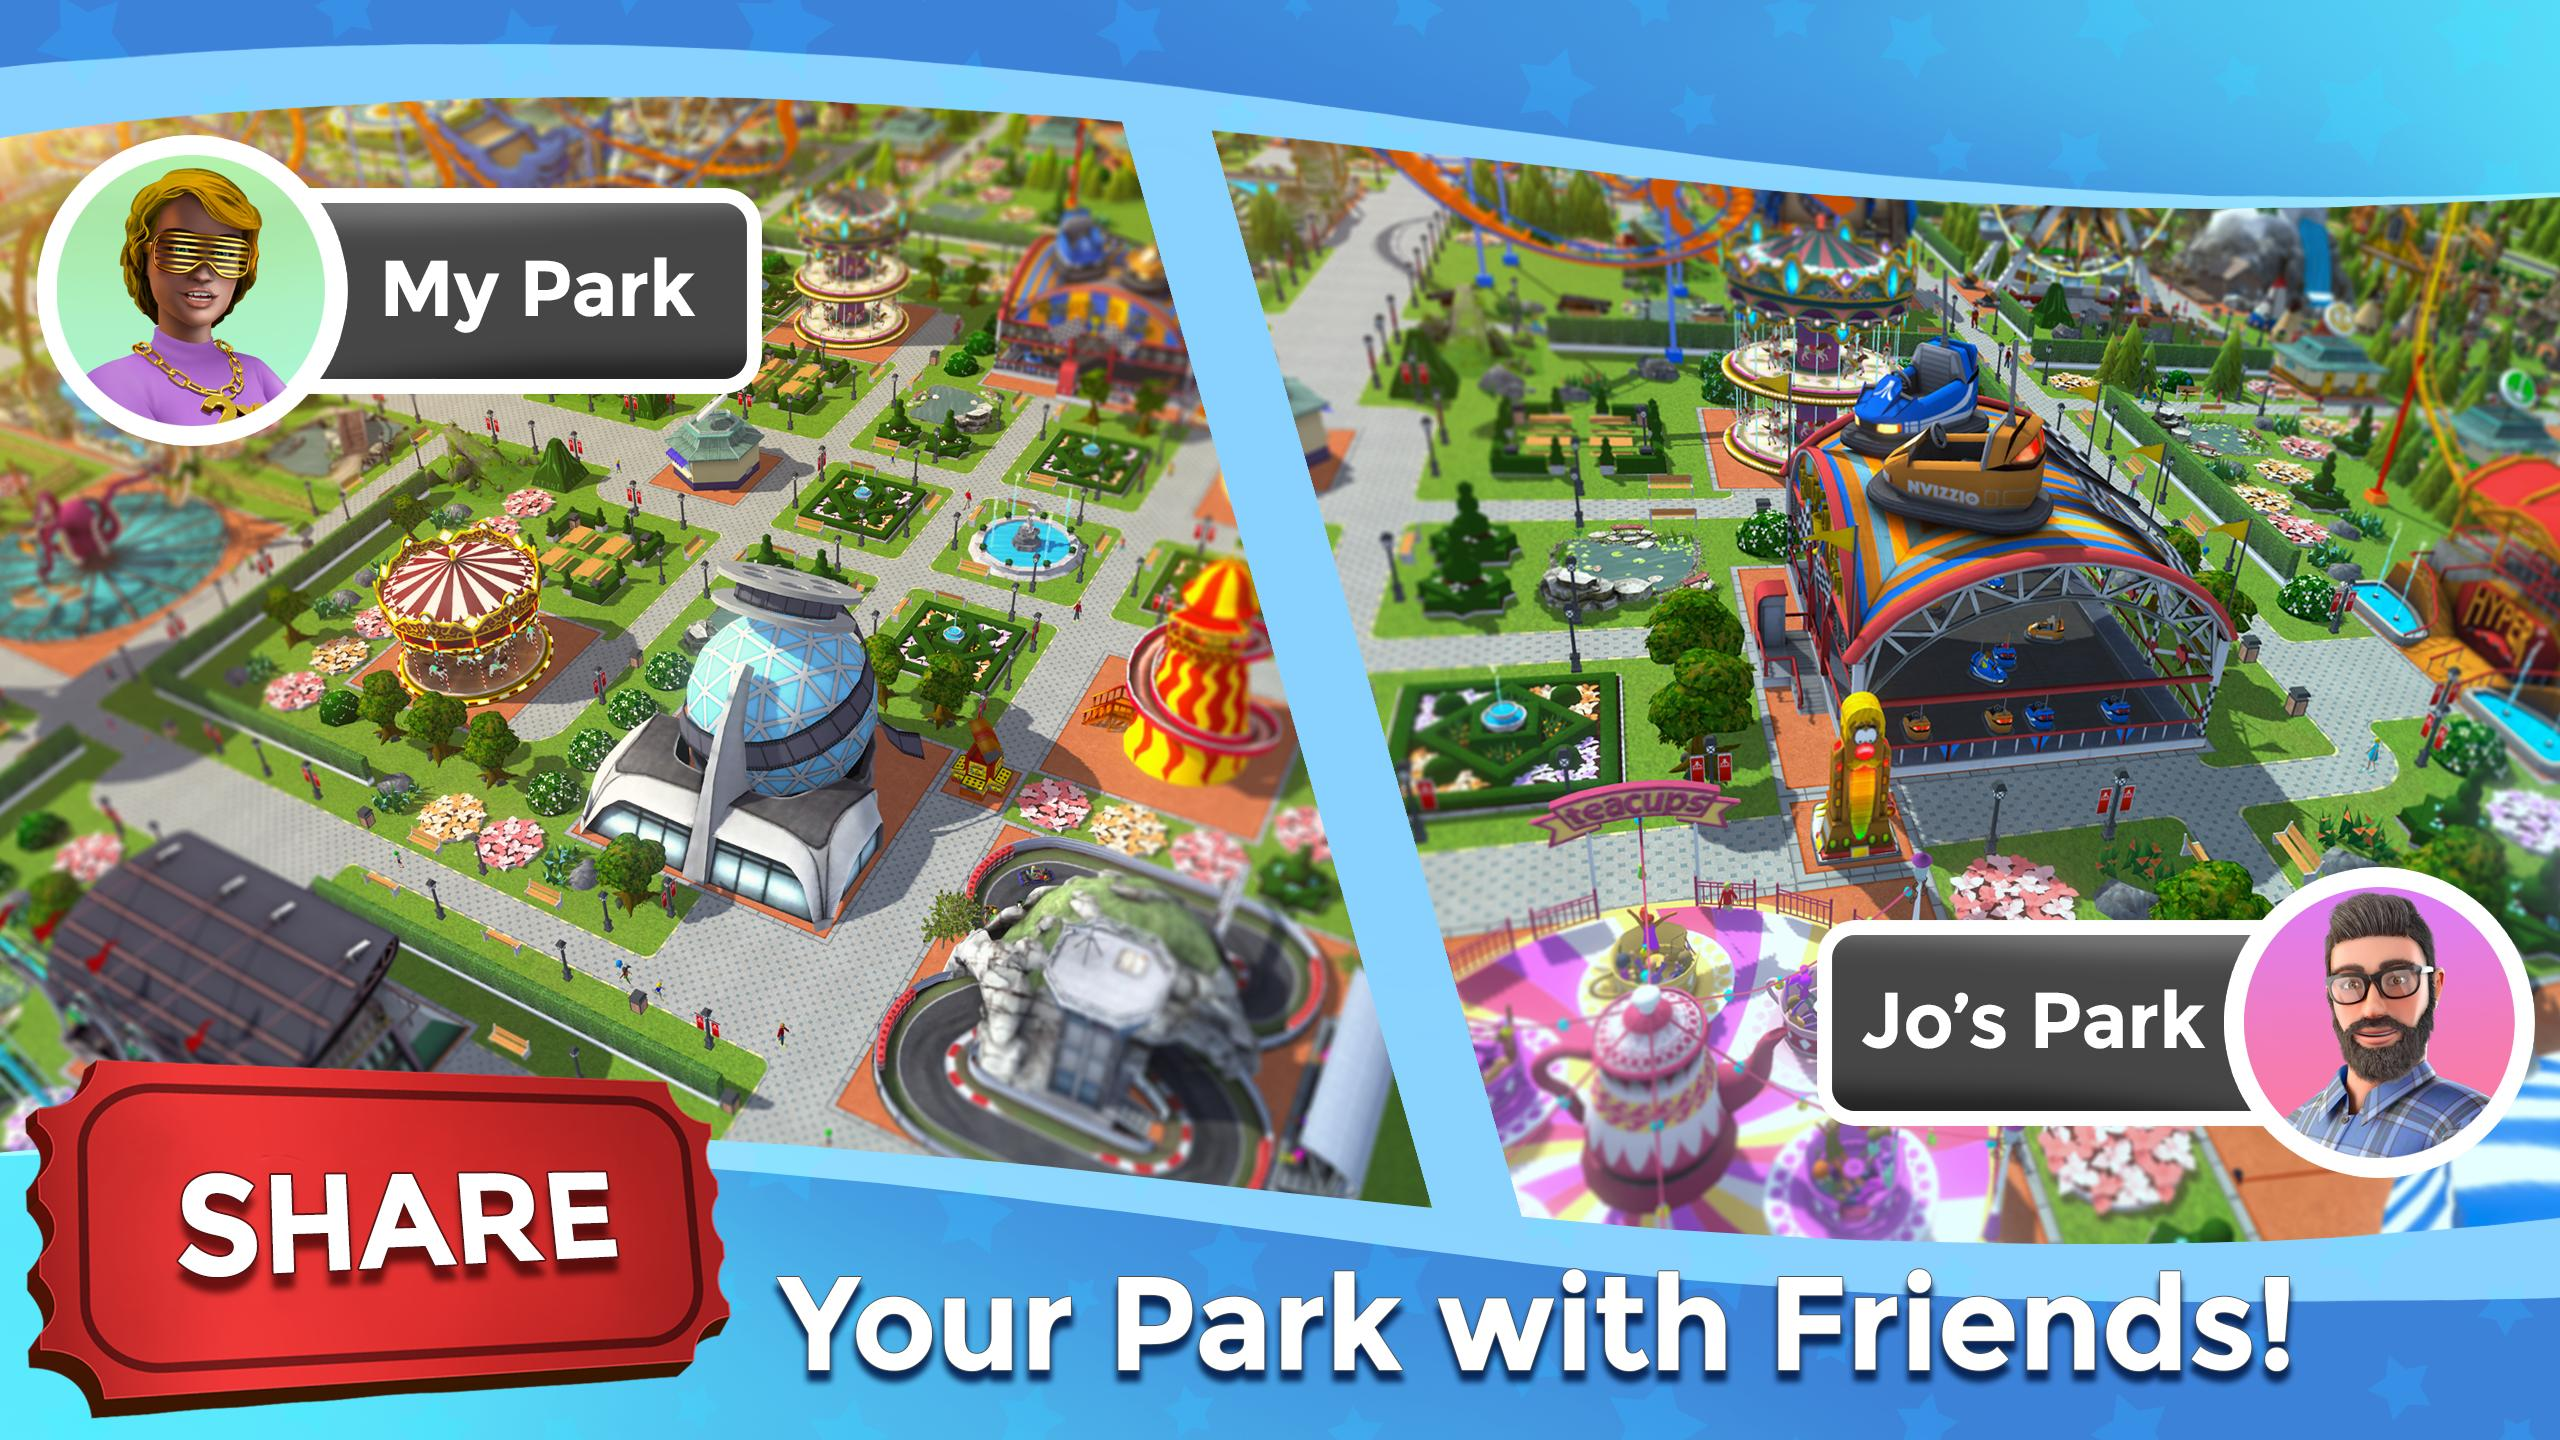 RollerCoaster Tycoon Touch - Build your Theme Park 3.5.0 Screenshot 15